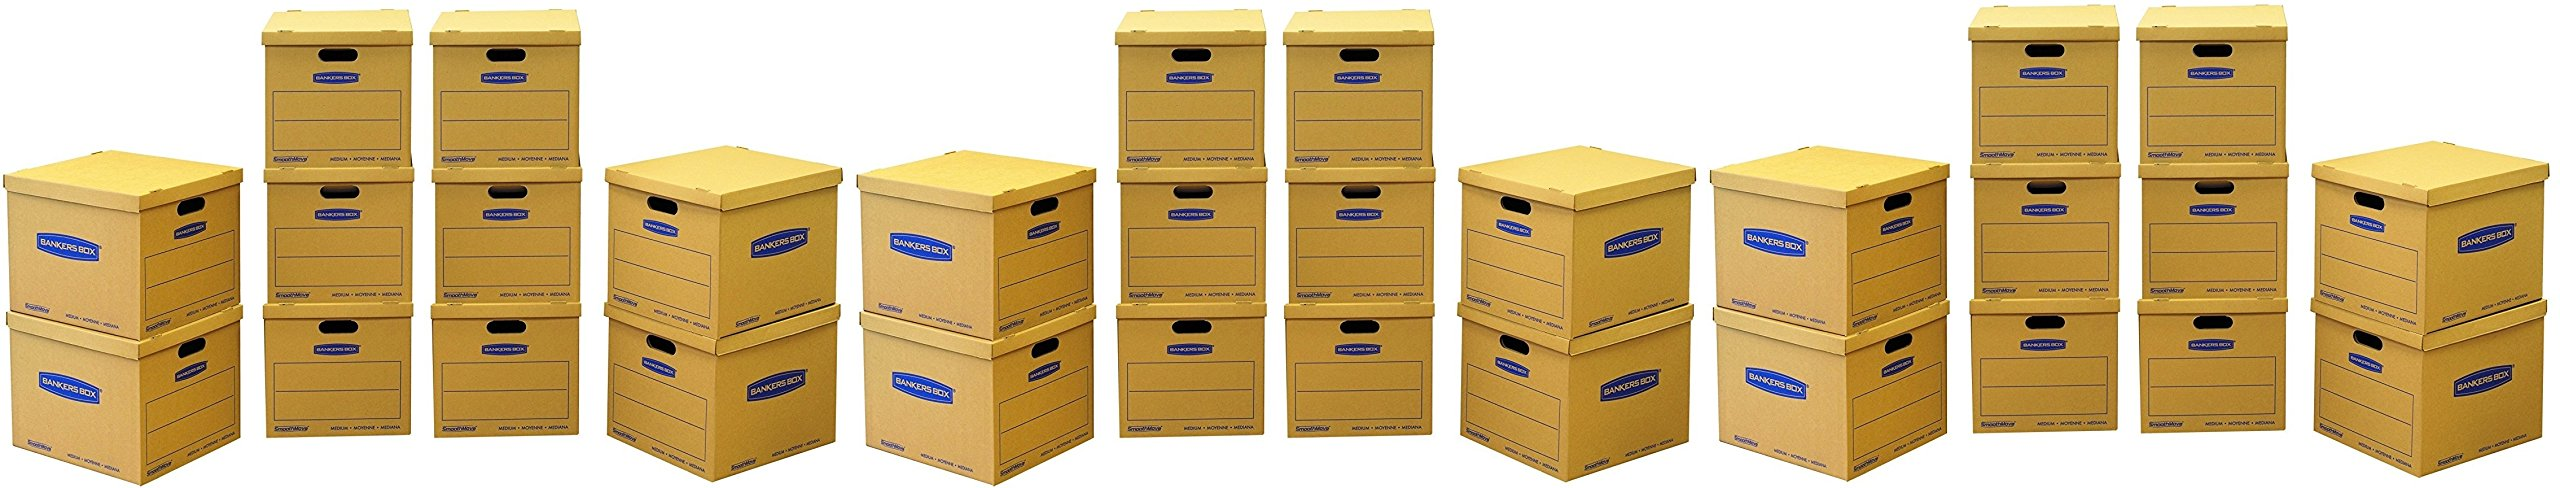 Bankers Box Smooth Move Classic Moving Boxes, Medium, (7717204) (30 Boxes Total)